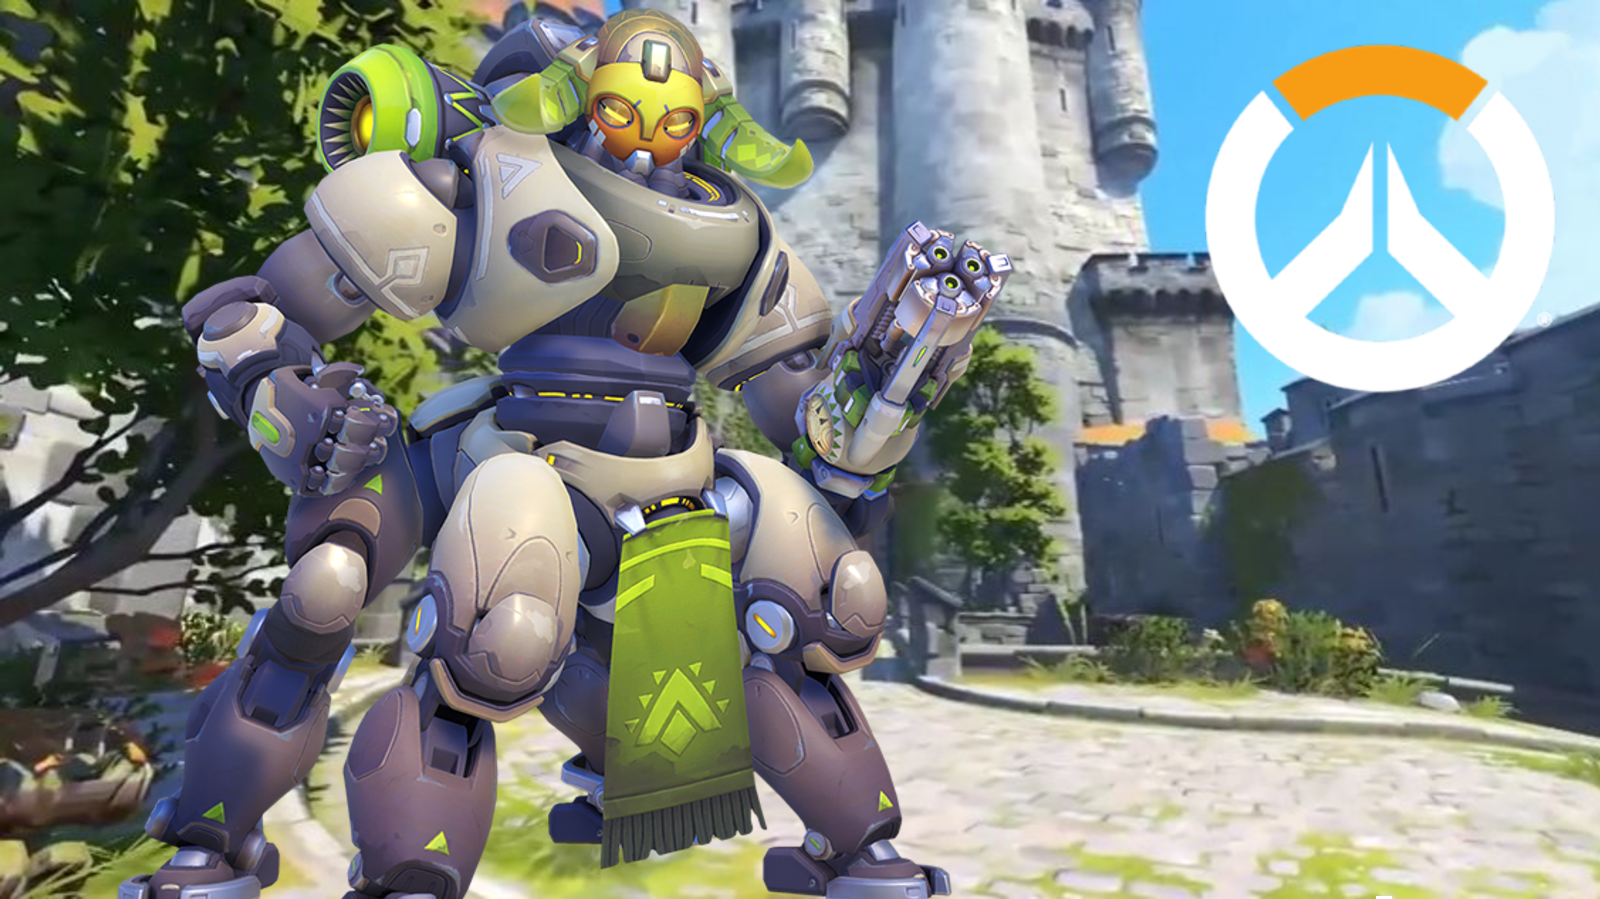 Orisa Eichenwalde Castle Overwatch Logo PTR Mechanic Mount WoW